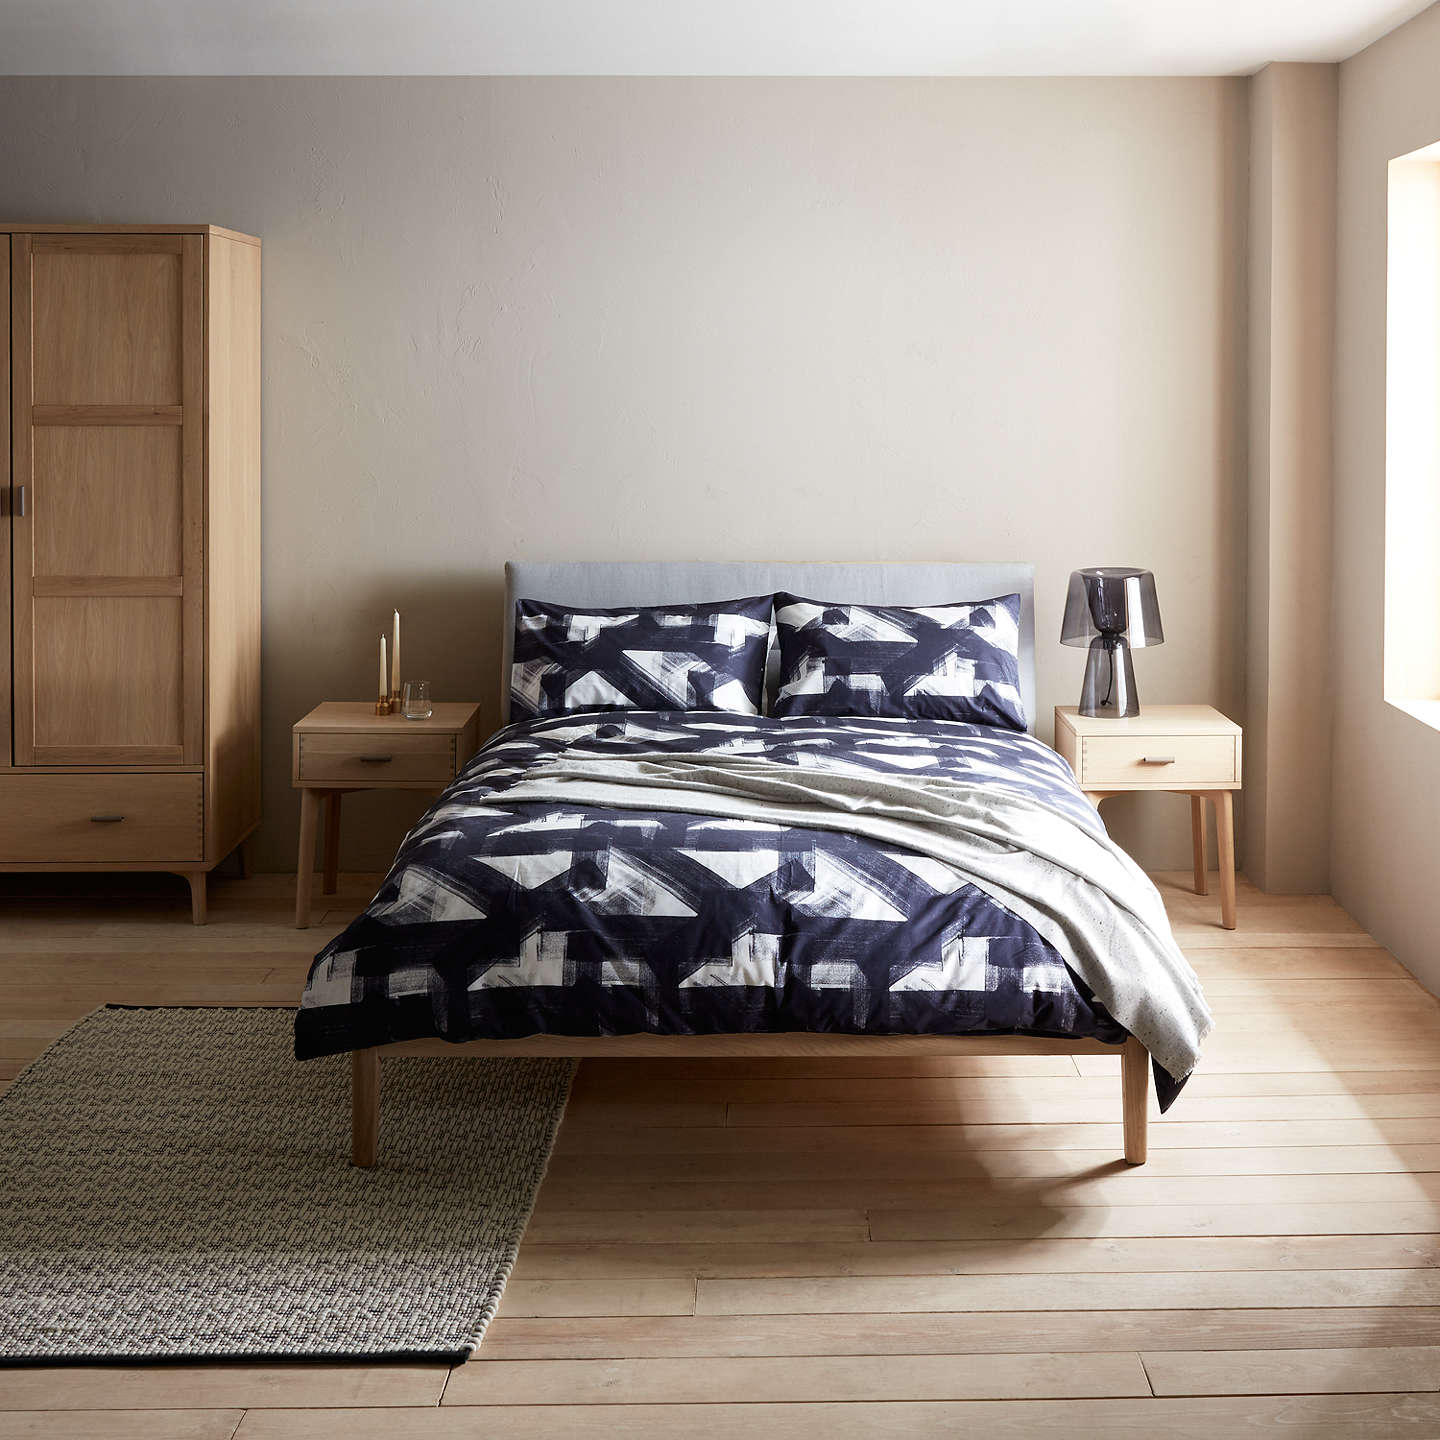 Design project by john lewis bed frame super king size at john lewis for John lewis home design service reviews